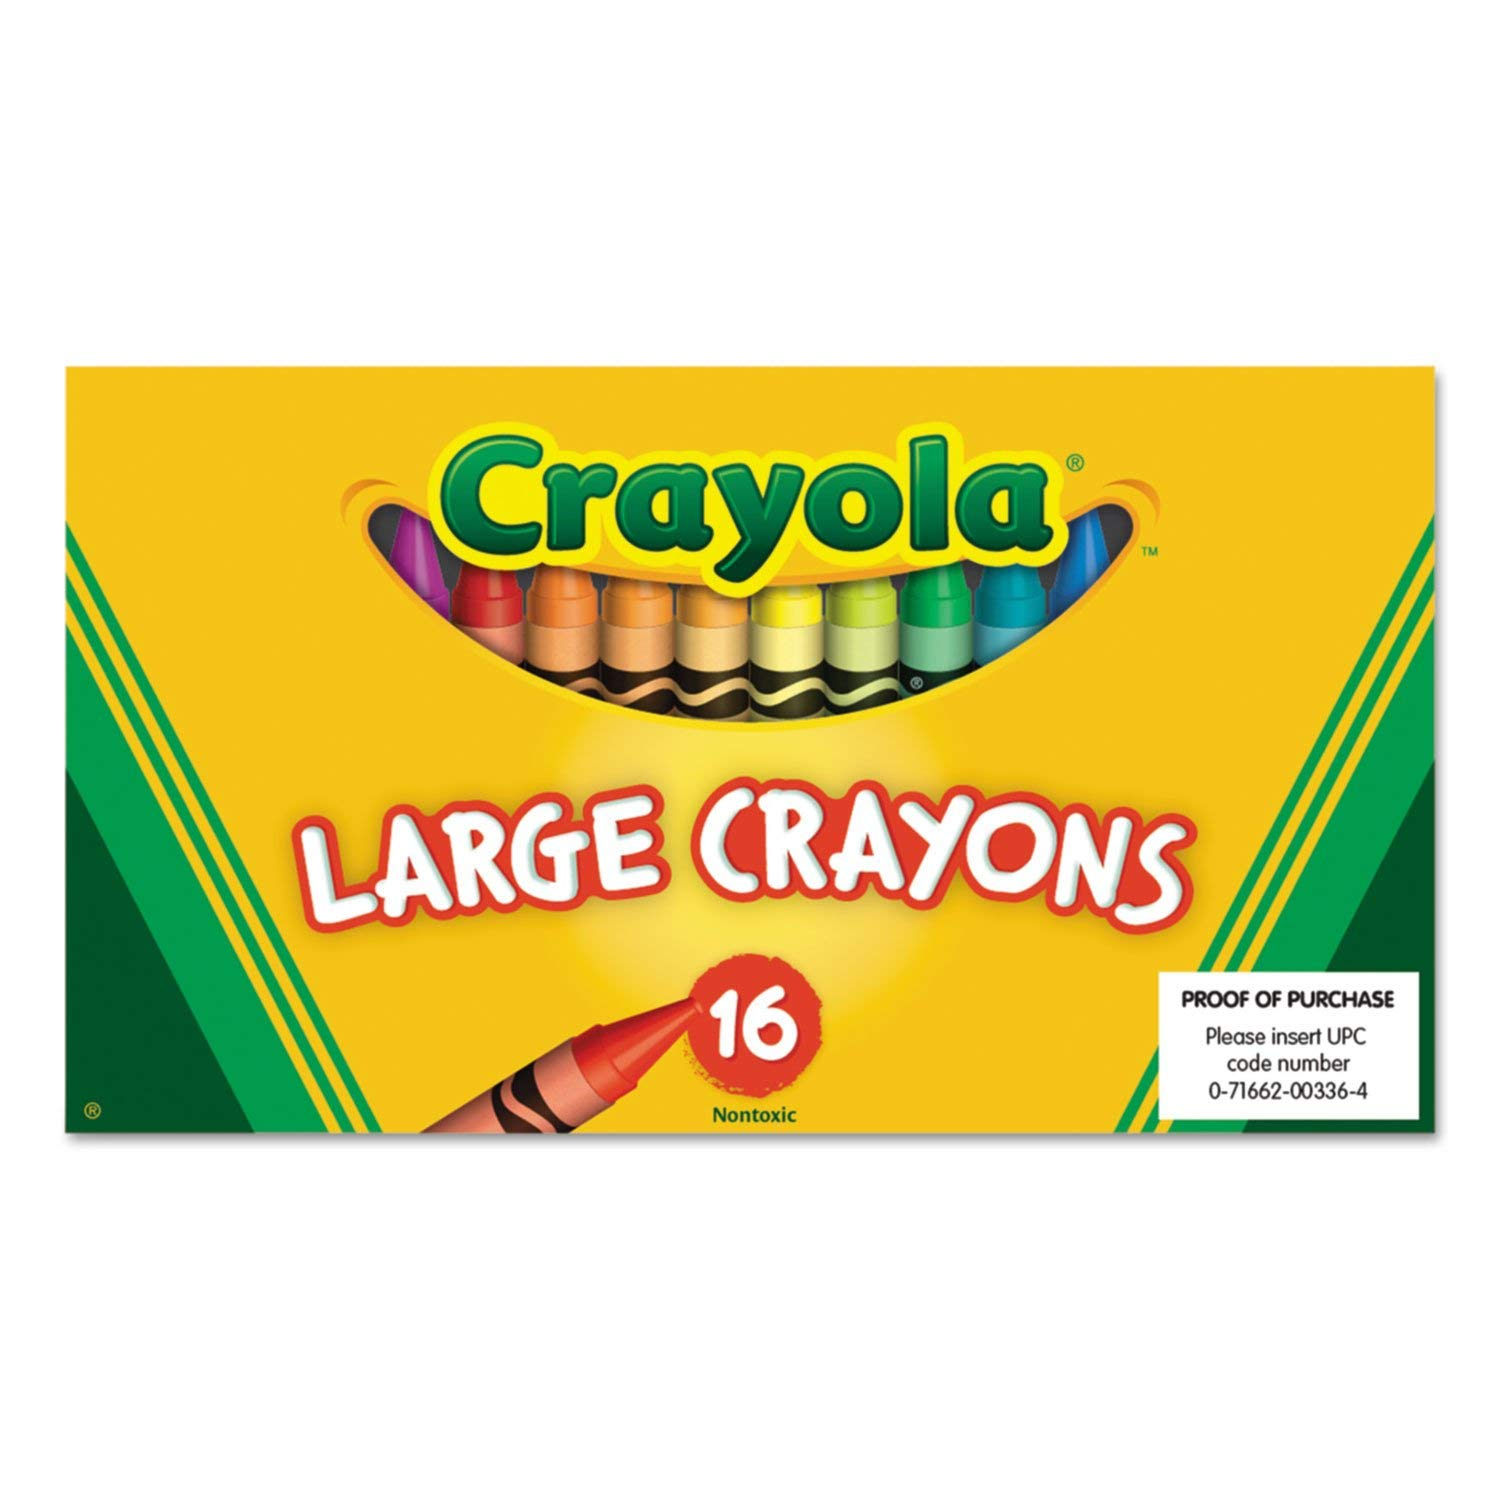 Wholesale CASE of 25 - Crayola Superior Quality Large Crayons-Large Crayons, Lift Lid, 16/BX, Ast by CYO